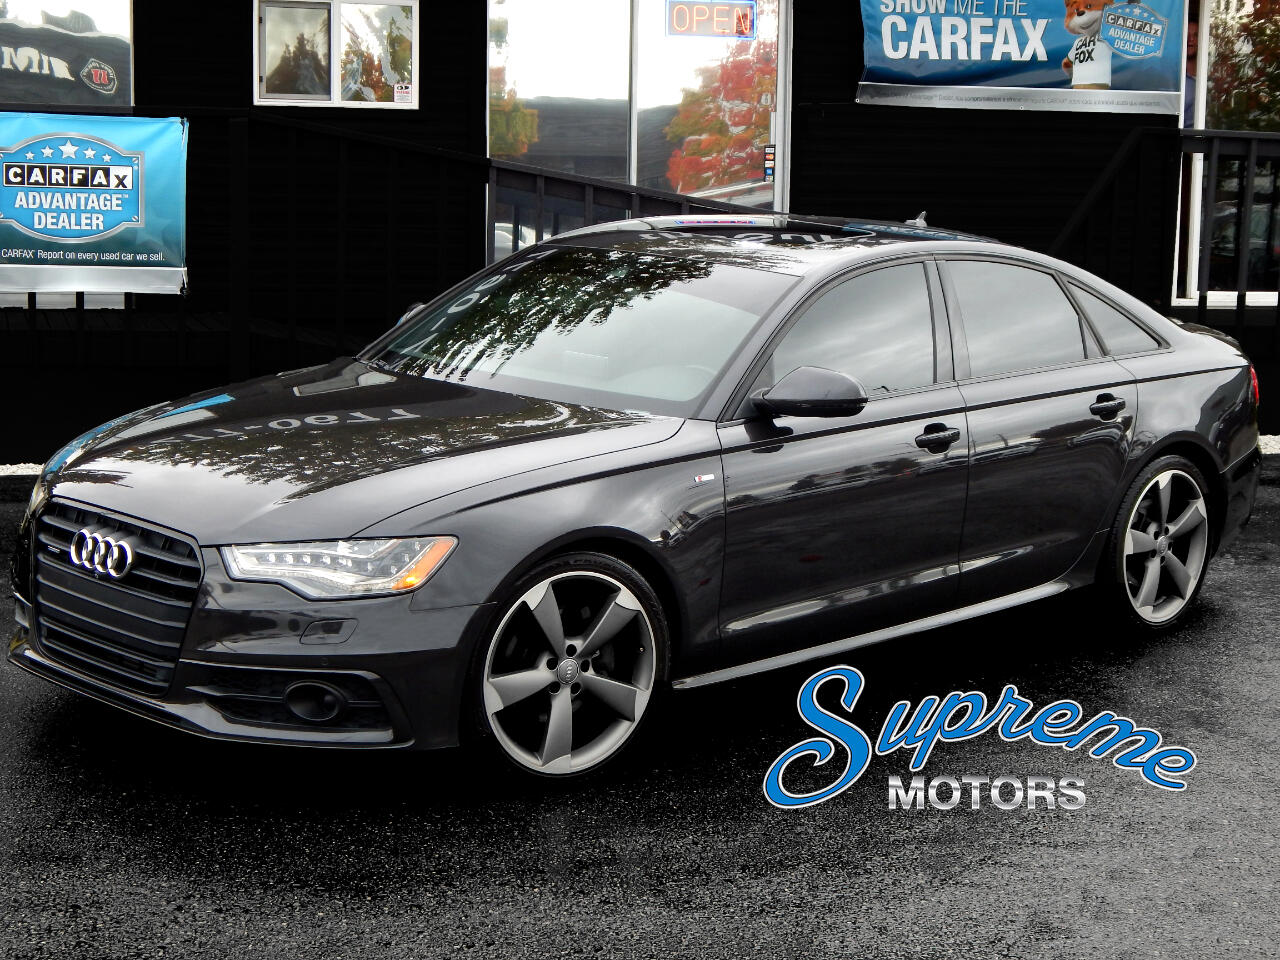 2015 Audi A6 S-LINE TDI Laser Guided Cruise